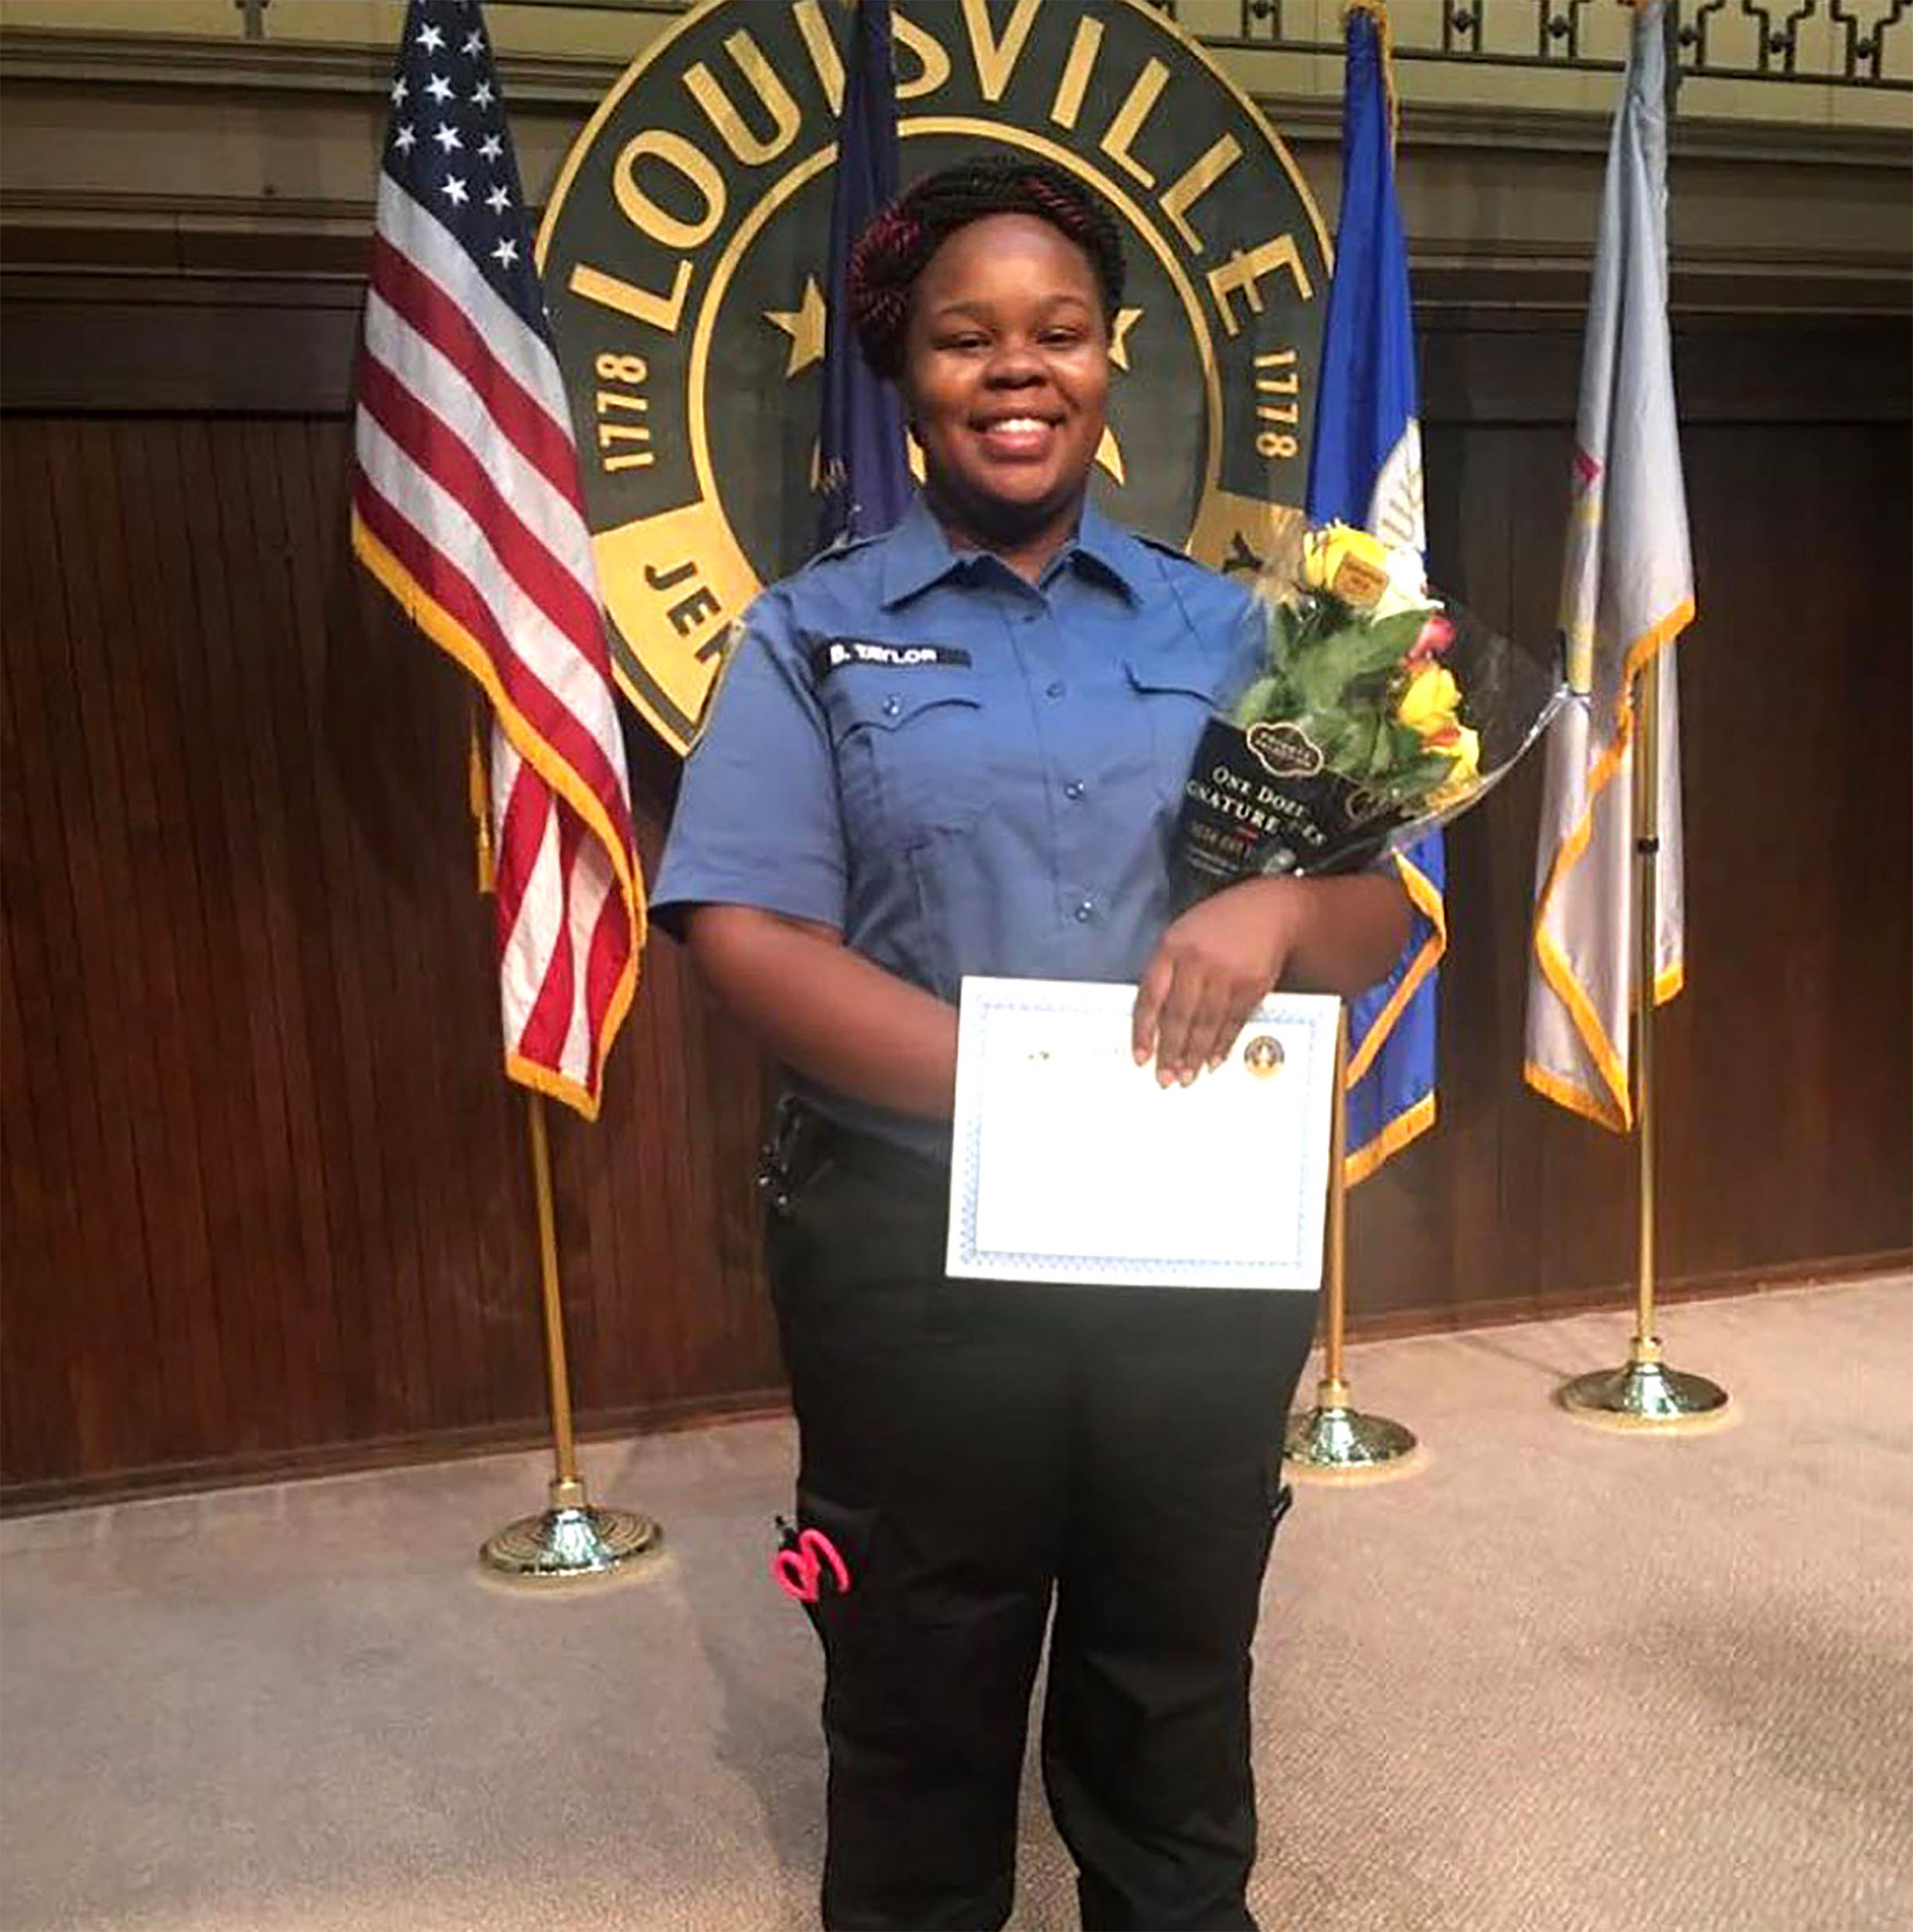 Breonna Taylor poses for a photo during a graduation ceremony in Louisville Kentucky.